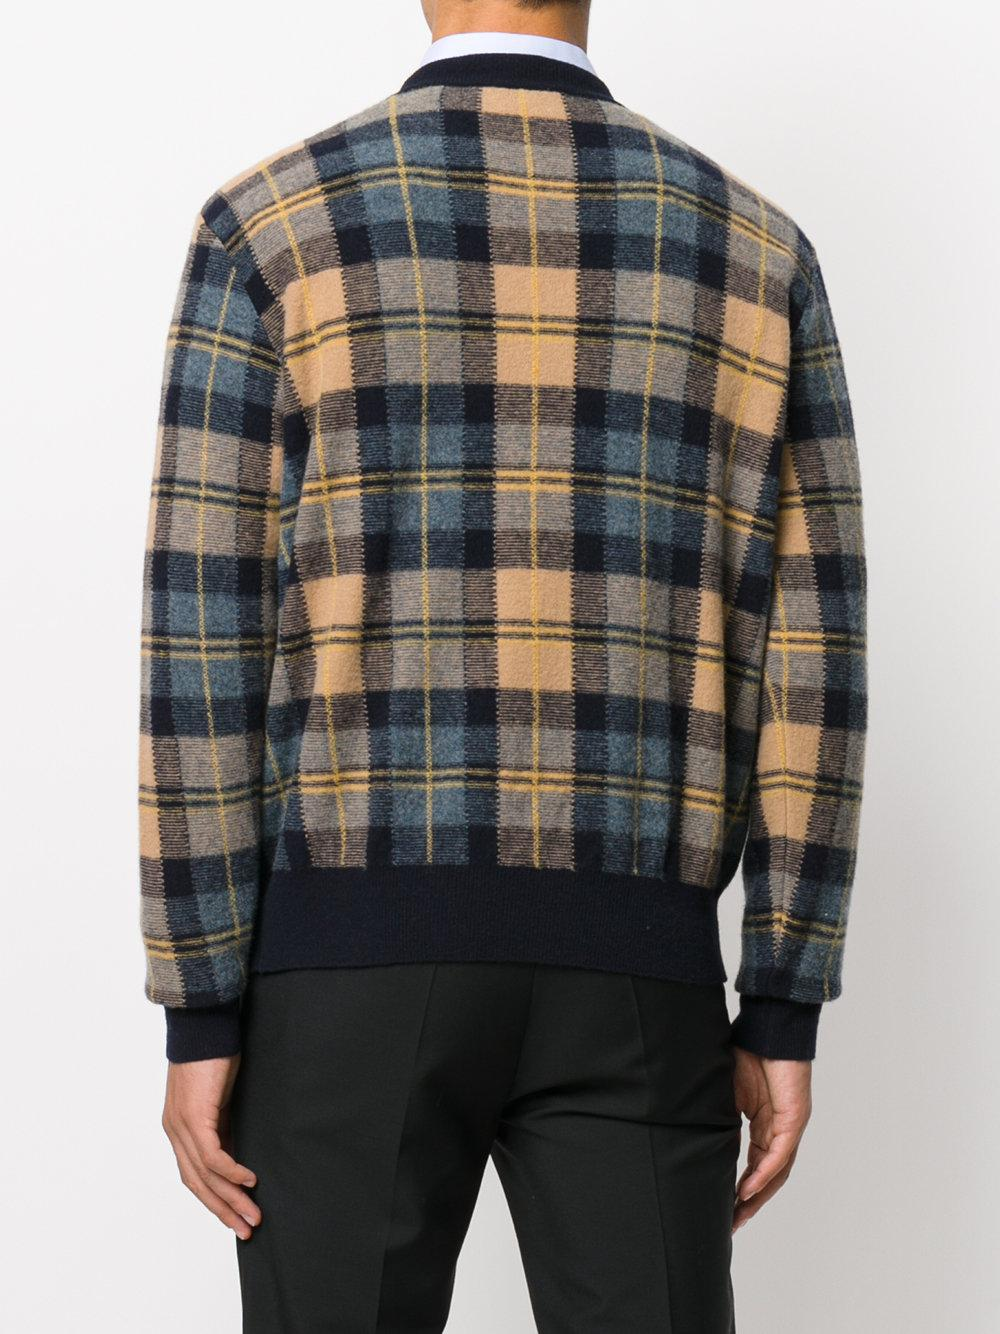 check sweater - Multicolour Stella McCartney Cheap Authentic Outlet Cheap Sale Finishline Outlet Websites LZZeChFu